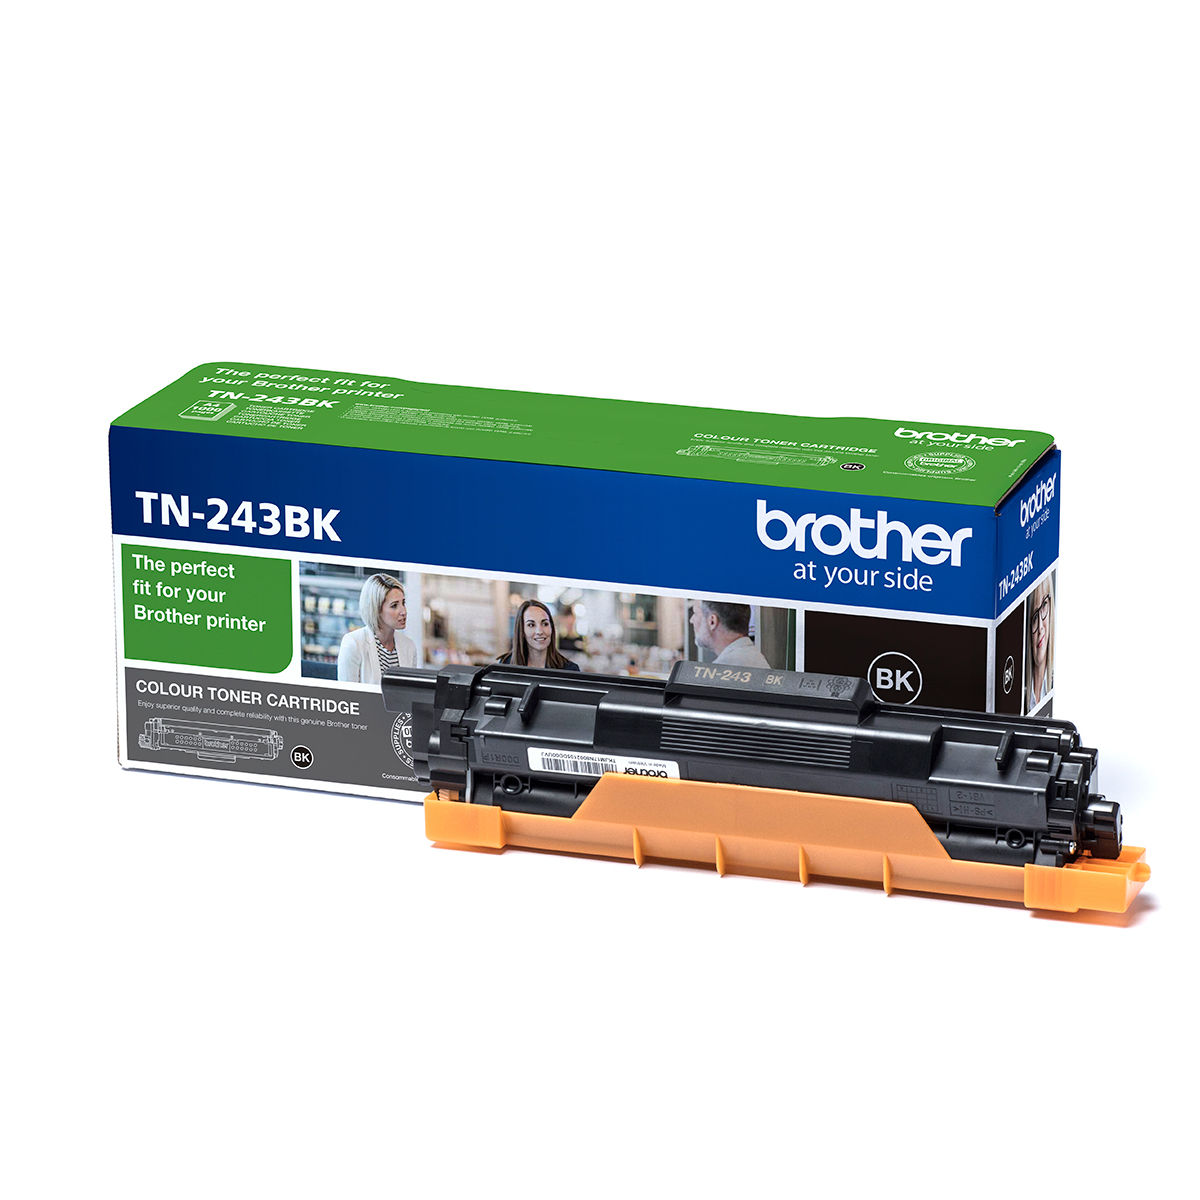 Brother TN-243BK Standard Black Toner